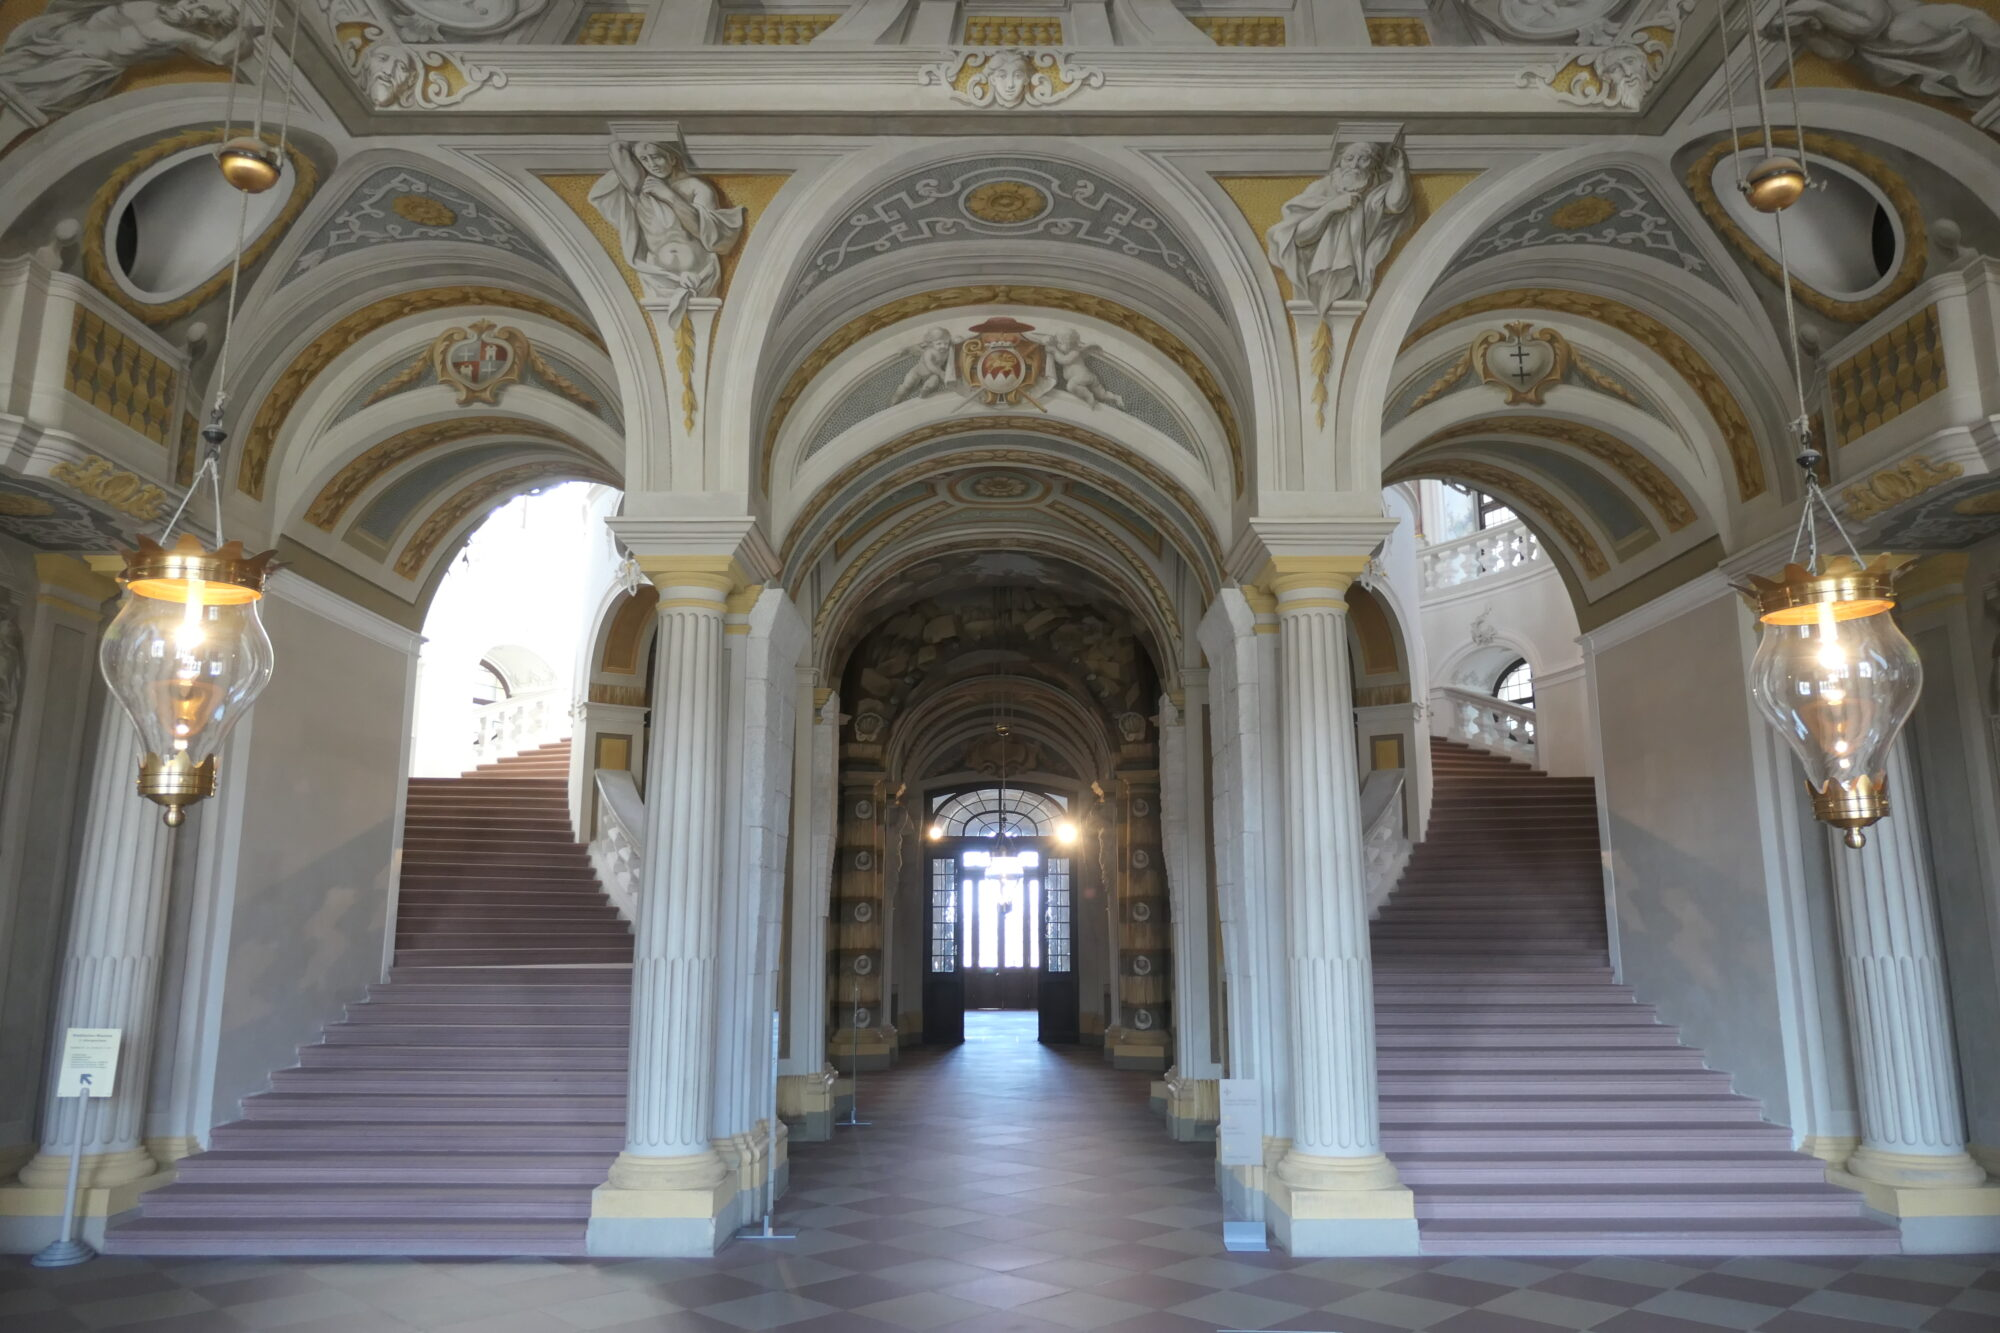 Stairway at Bruchsal Palace.